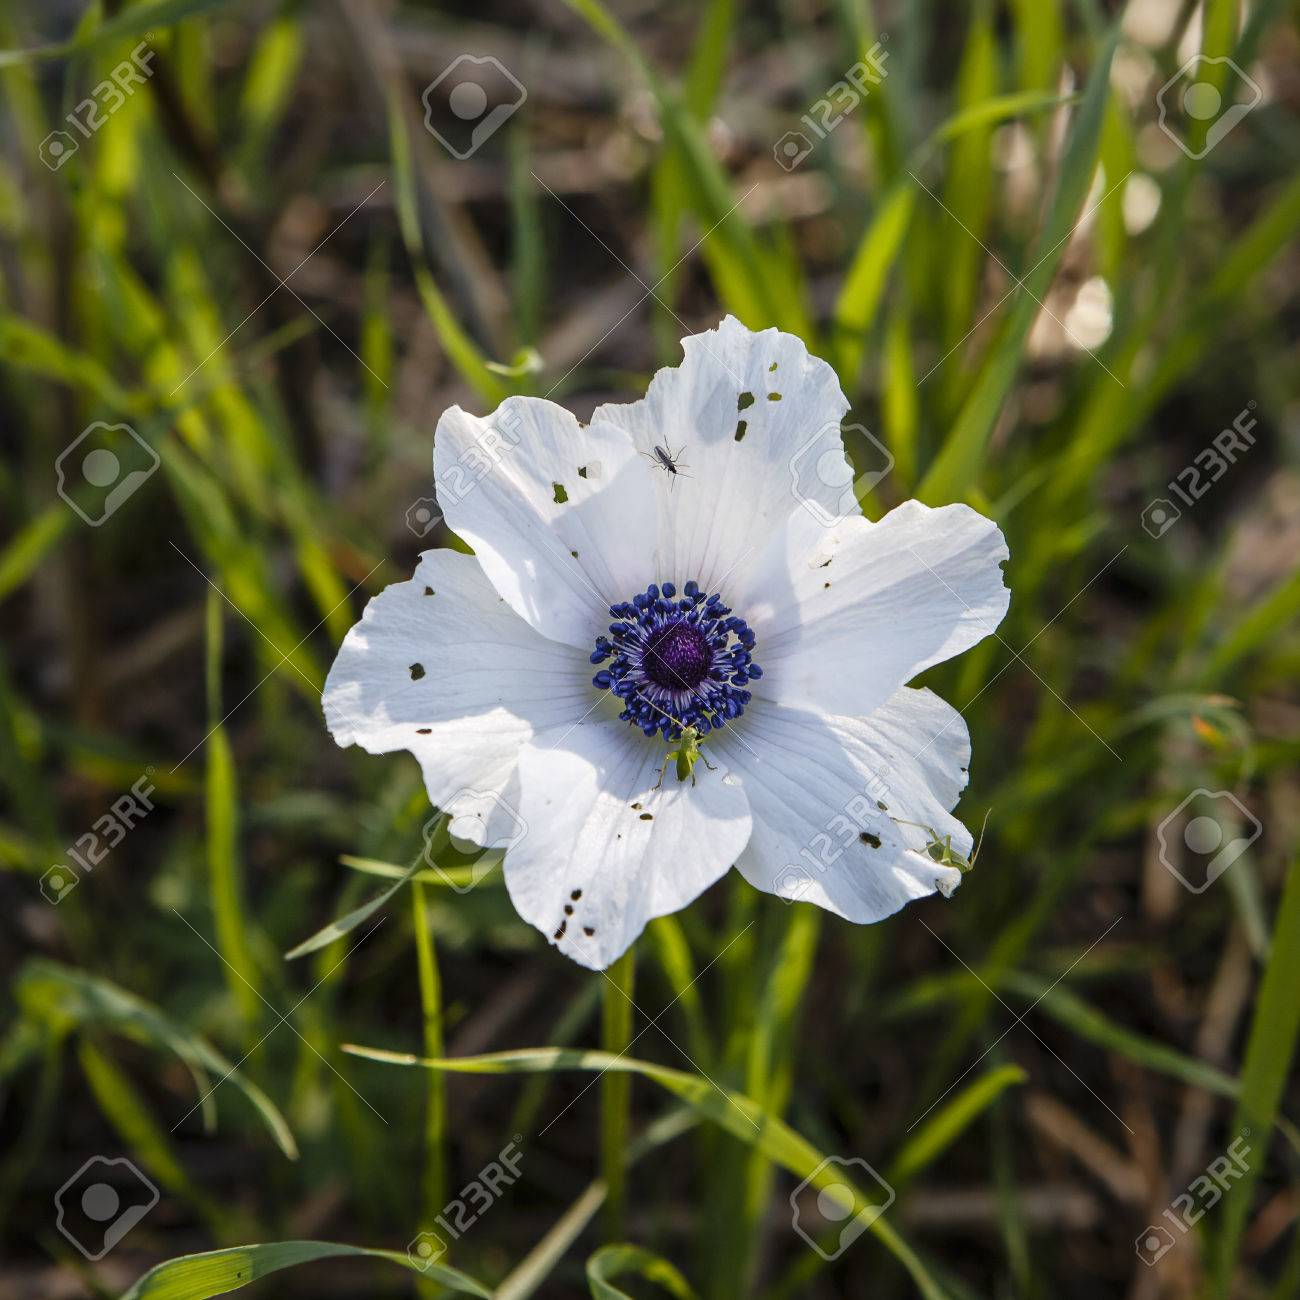 White anemone flower insect damage stock photo picture and royalty stock photo white anemone flower insect damage mightylinksfo